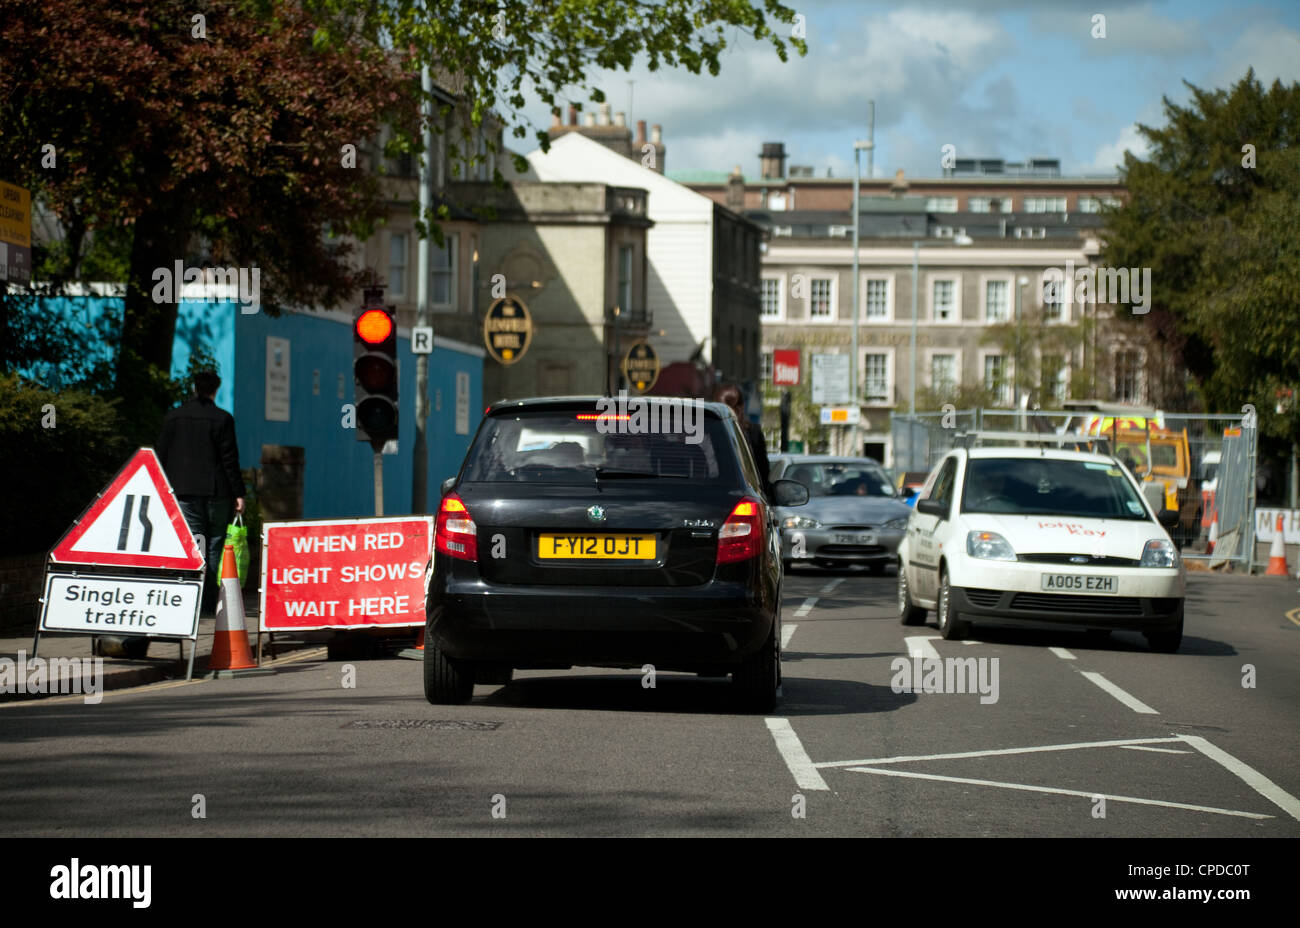 Cars stopped at traffic lights for temporary road works, Lensfield Rd, Cambridge UK - Stock Image